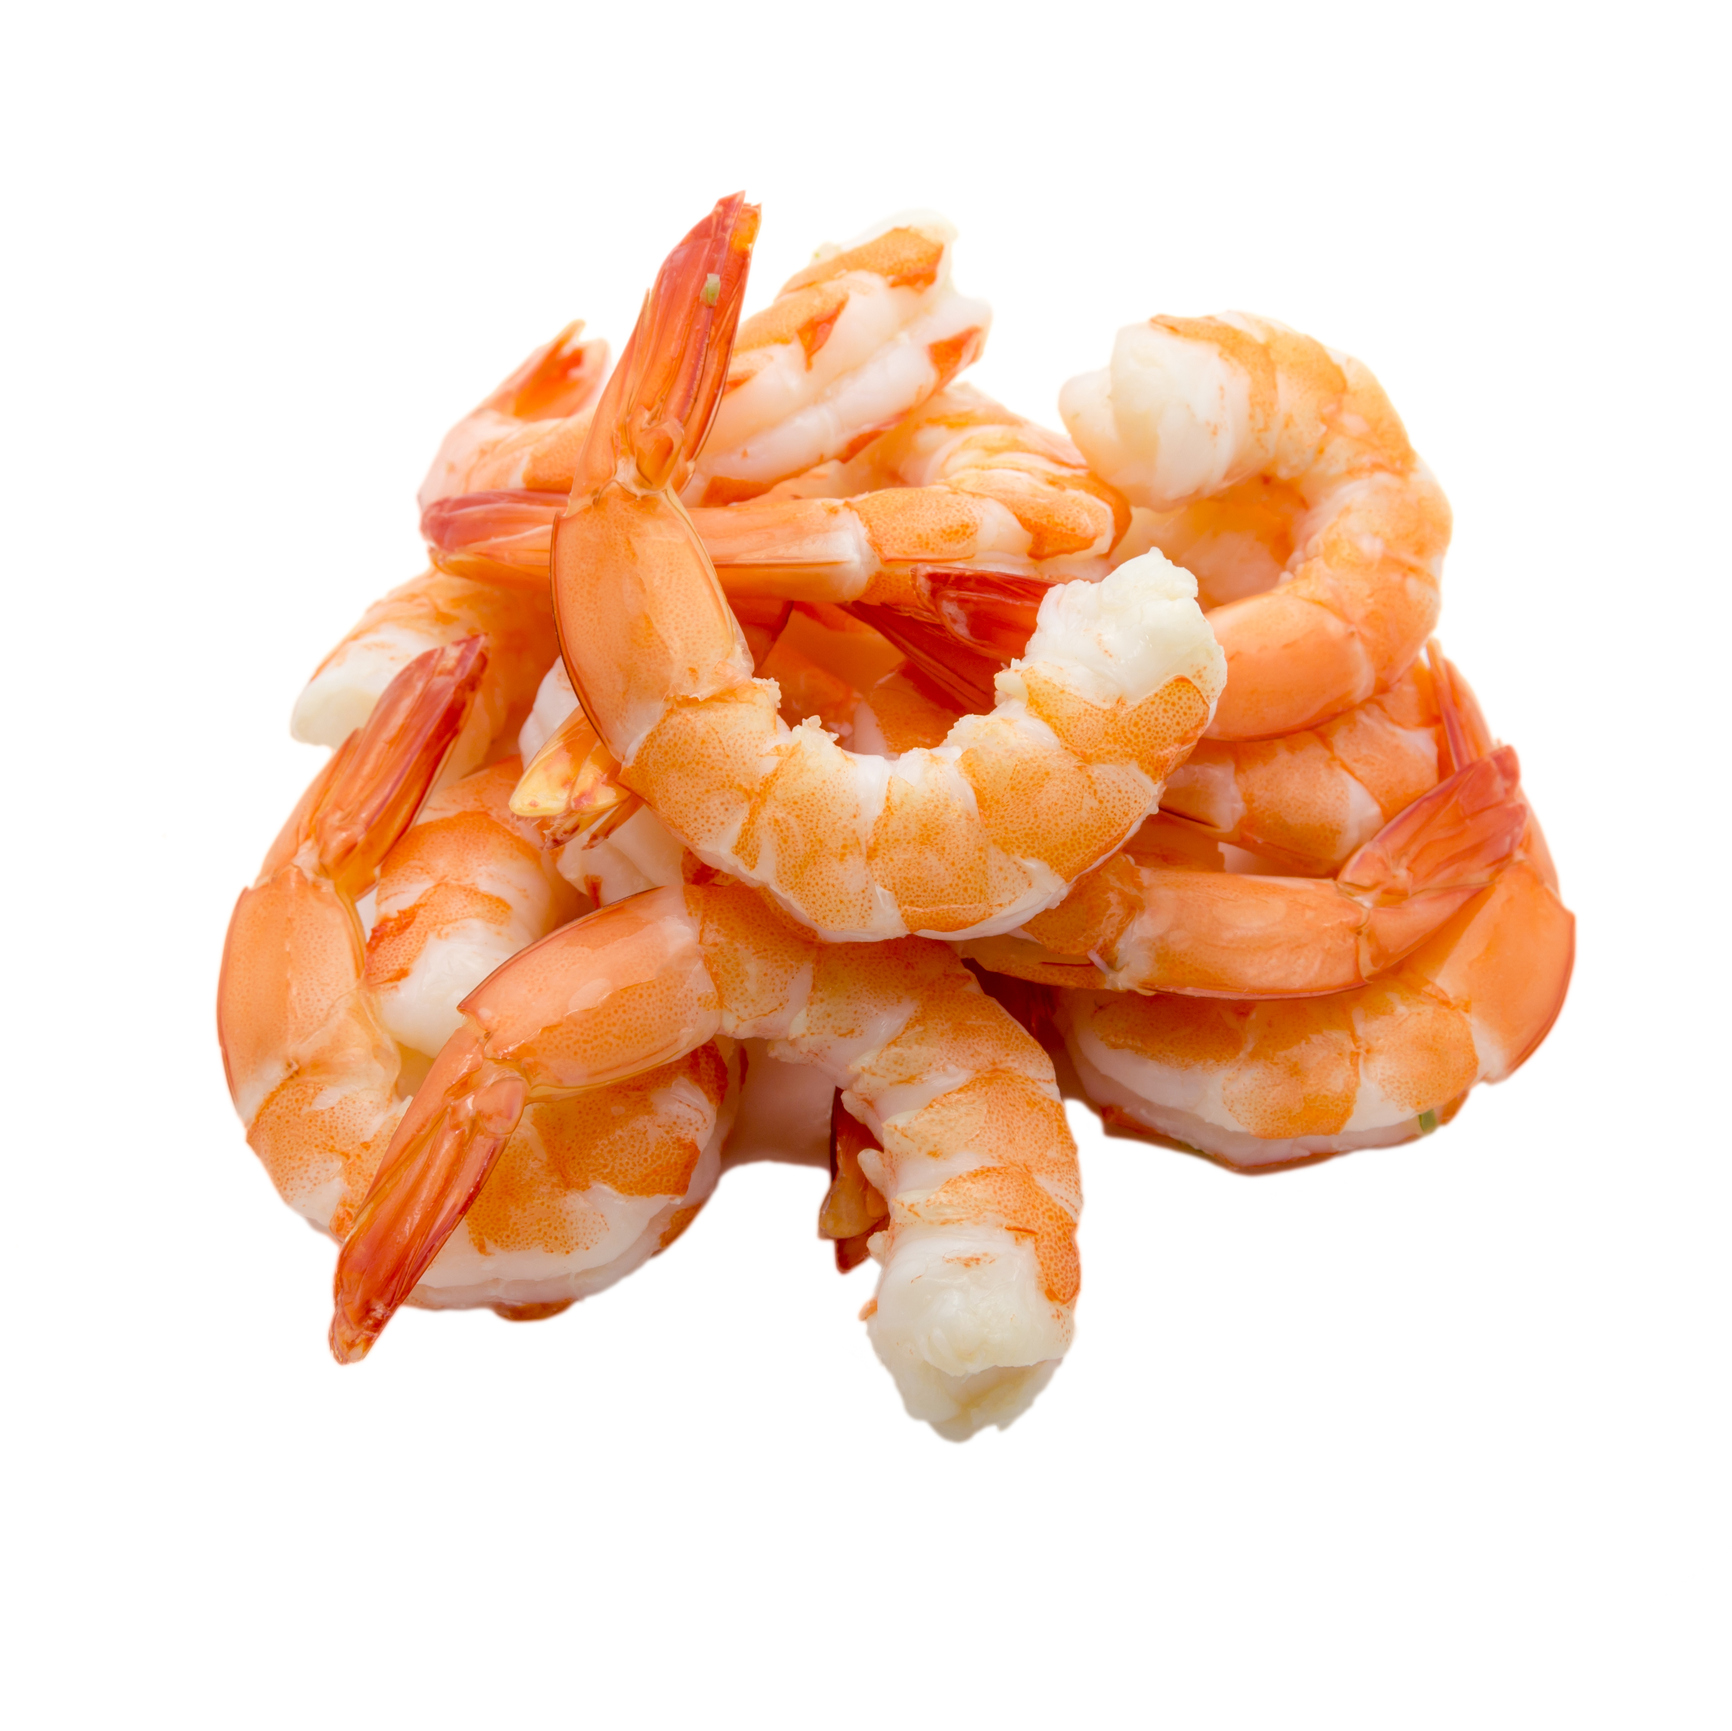 getty-shrimp-image